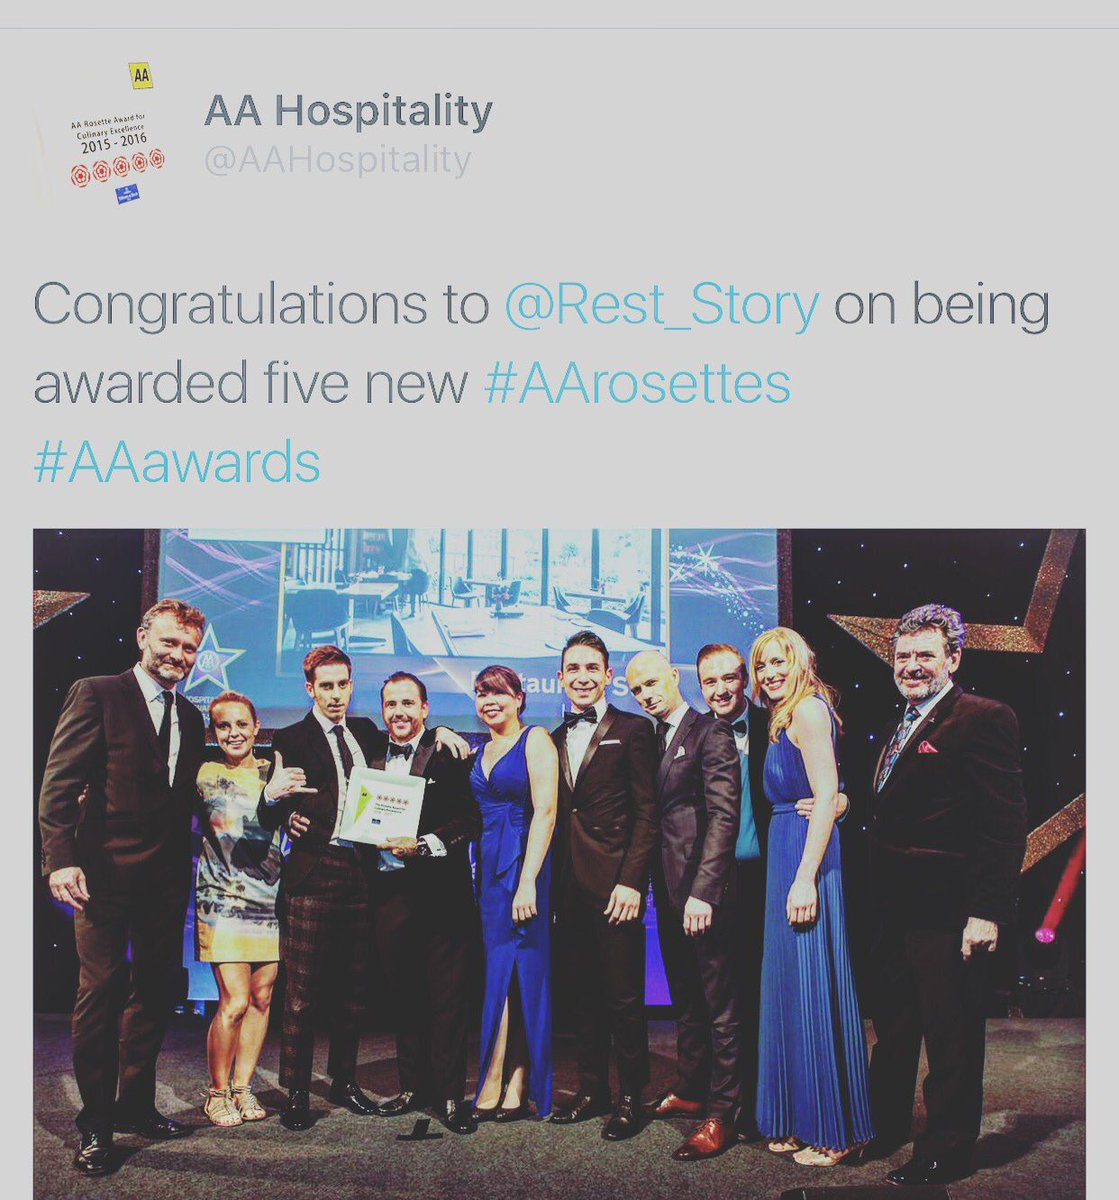 curtis stewart on tomsstory aahospitality when curtis stewart on tomsstory aahospitality when westwoodlee congrats you on winning 5 rosettes you know you ve madeit well done guys deserved